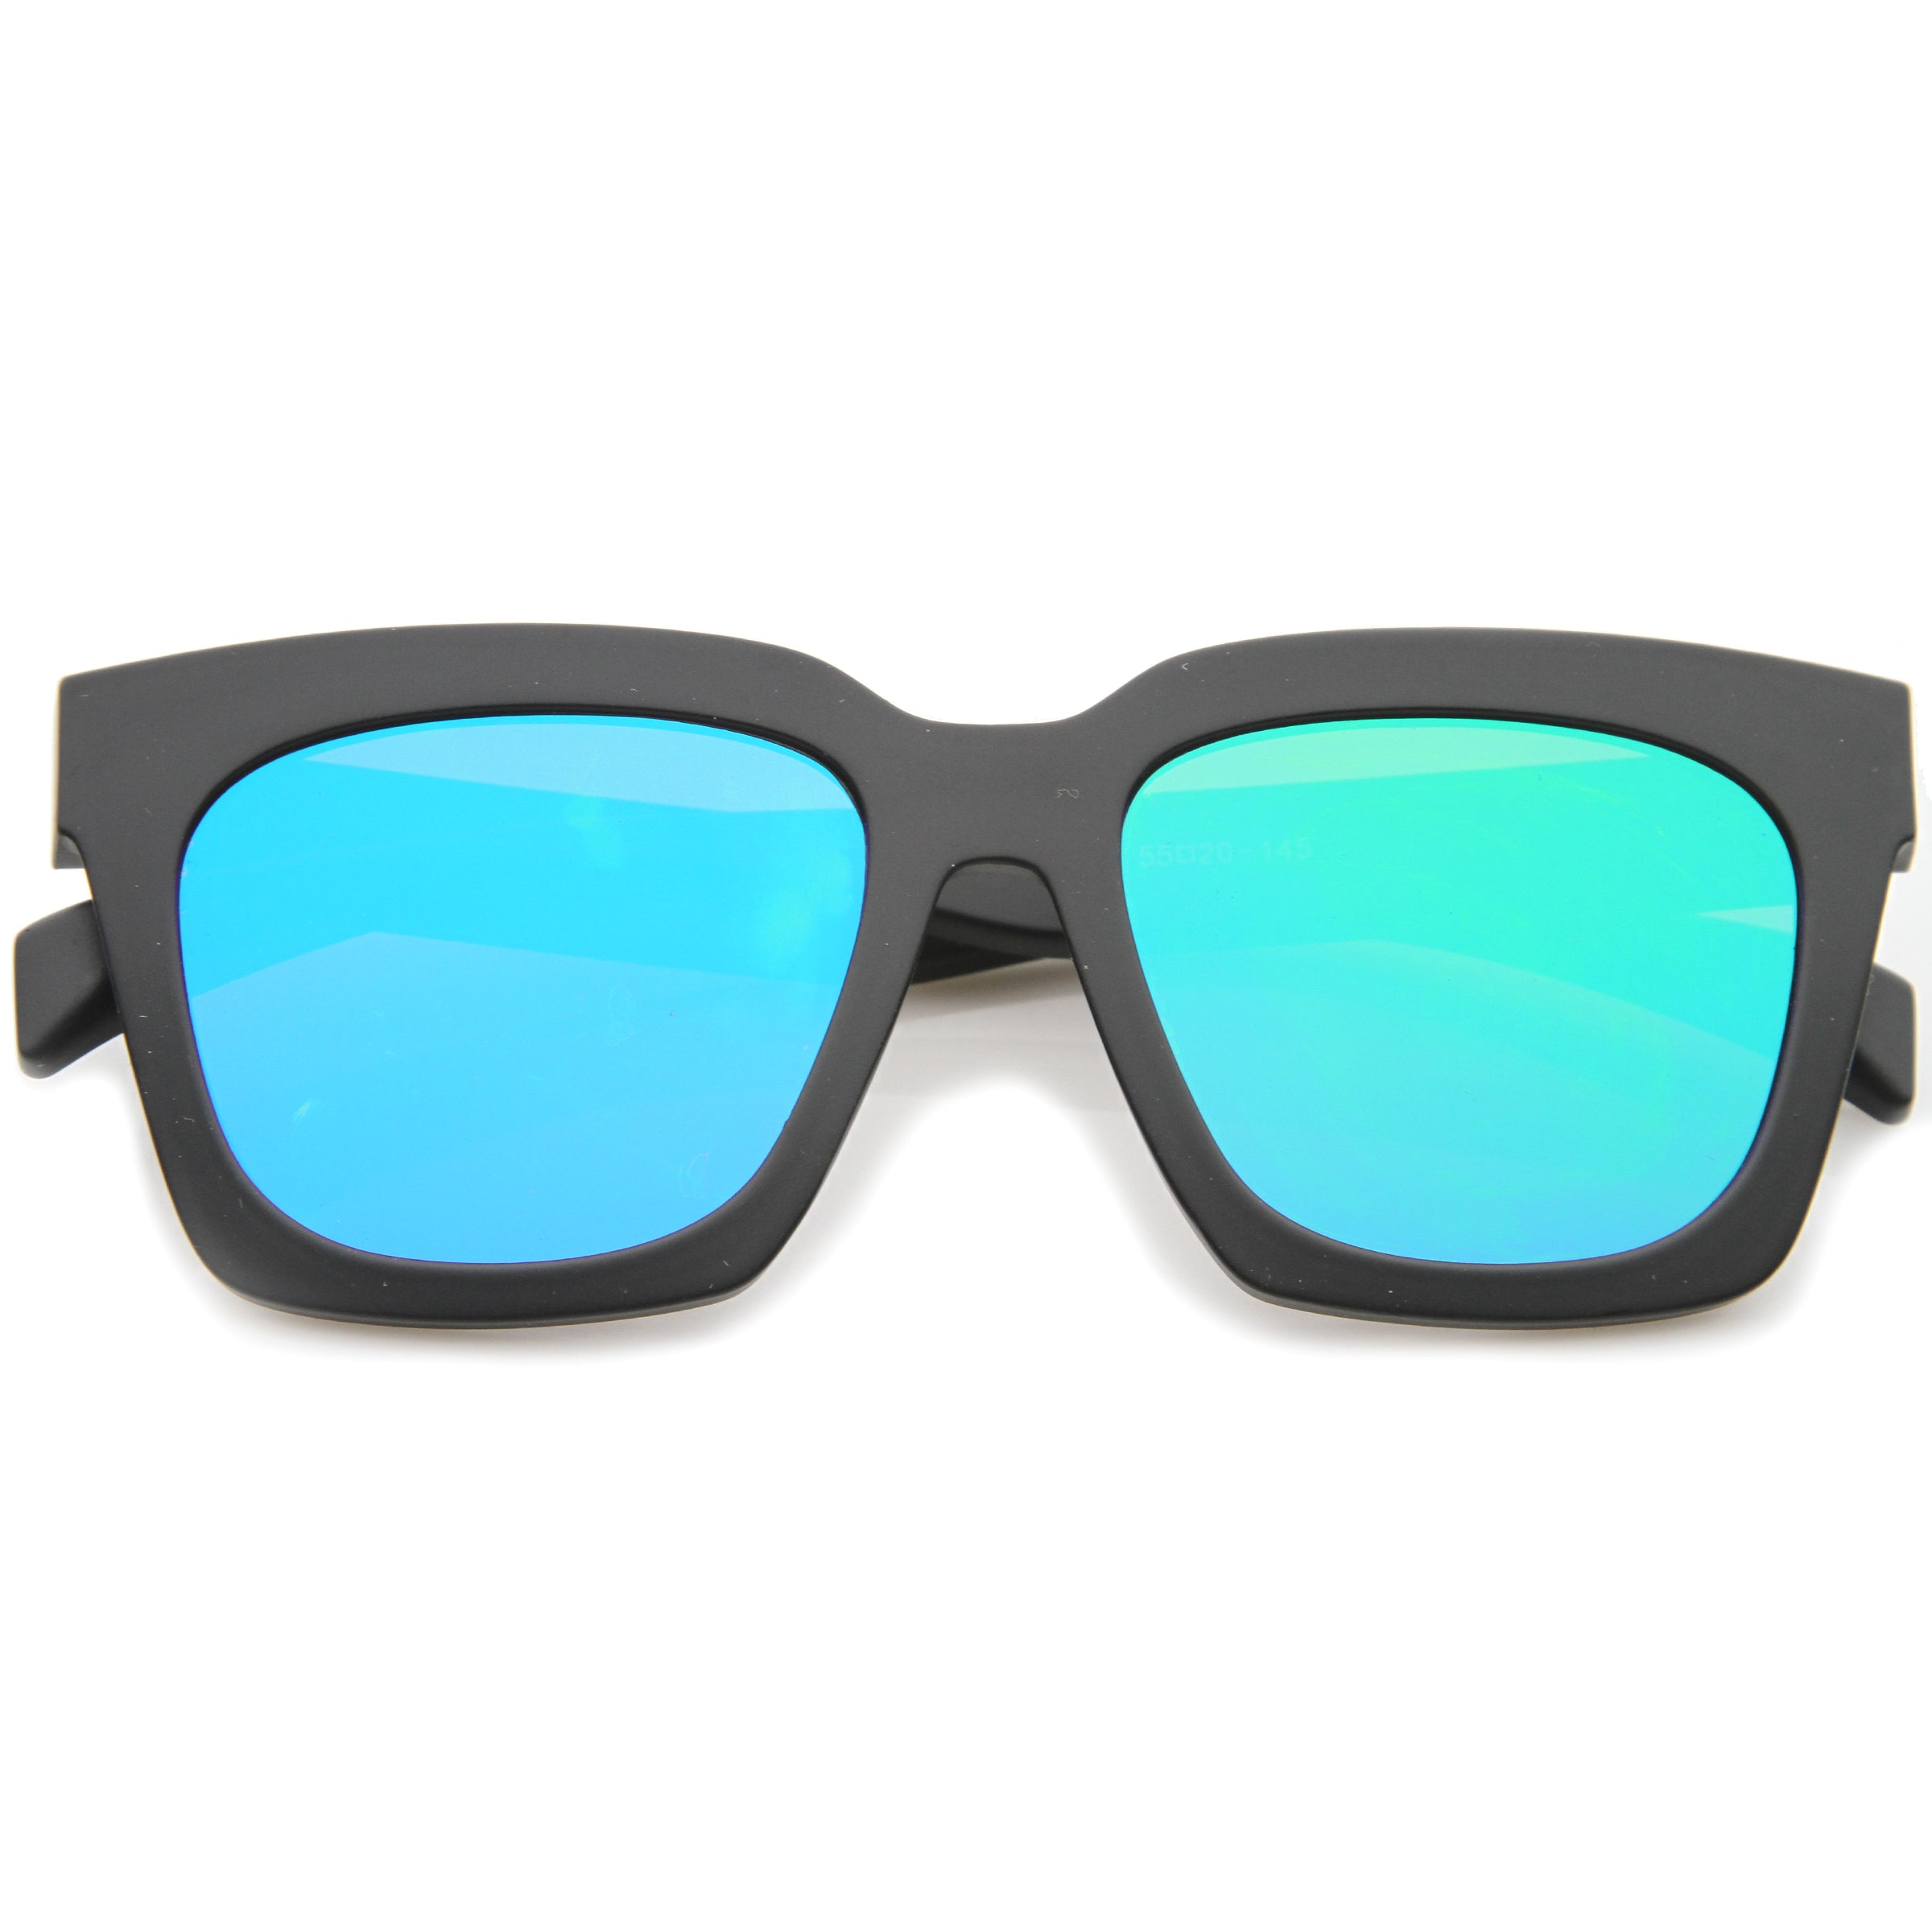 Retro Matte Horn Rimmed Colored Mirror Flat Lens Oversize Square Sunglasses 54mm - sunglass.la - 17